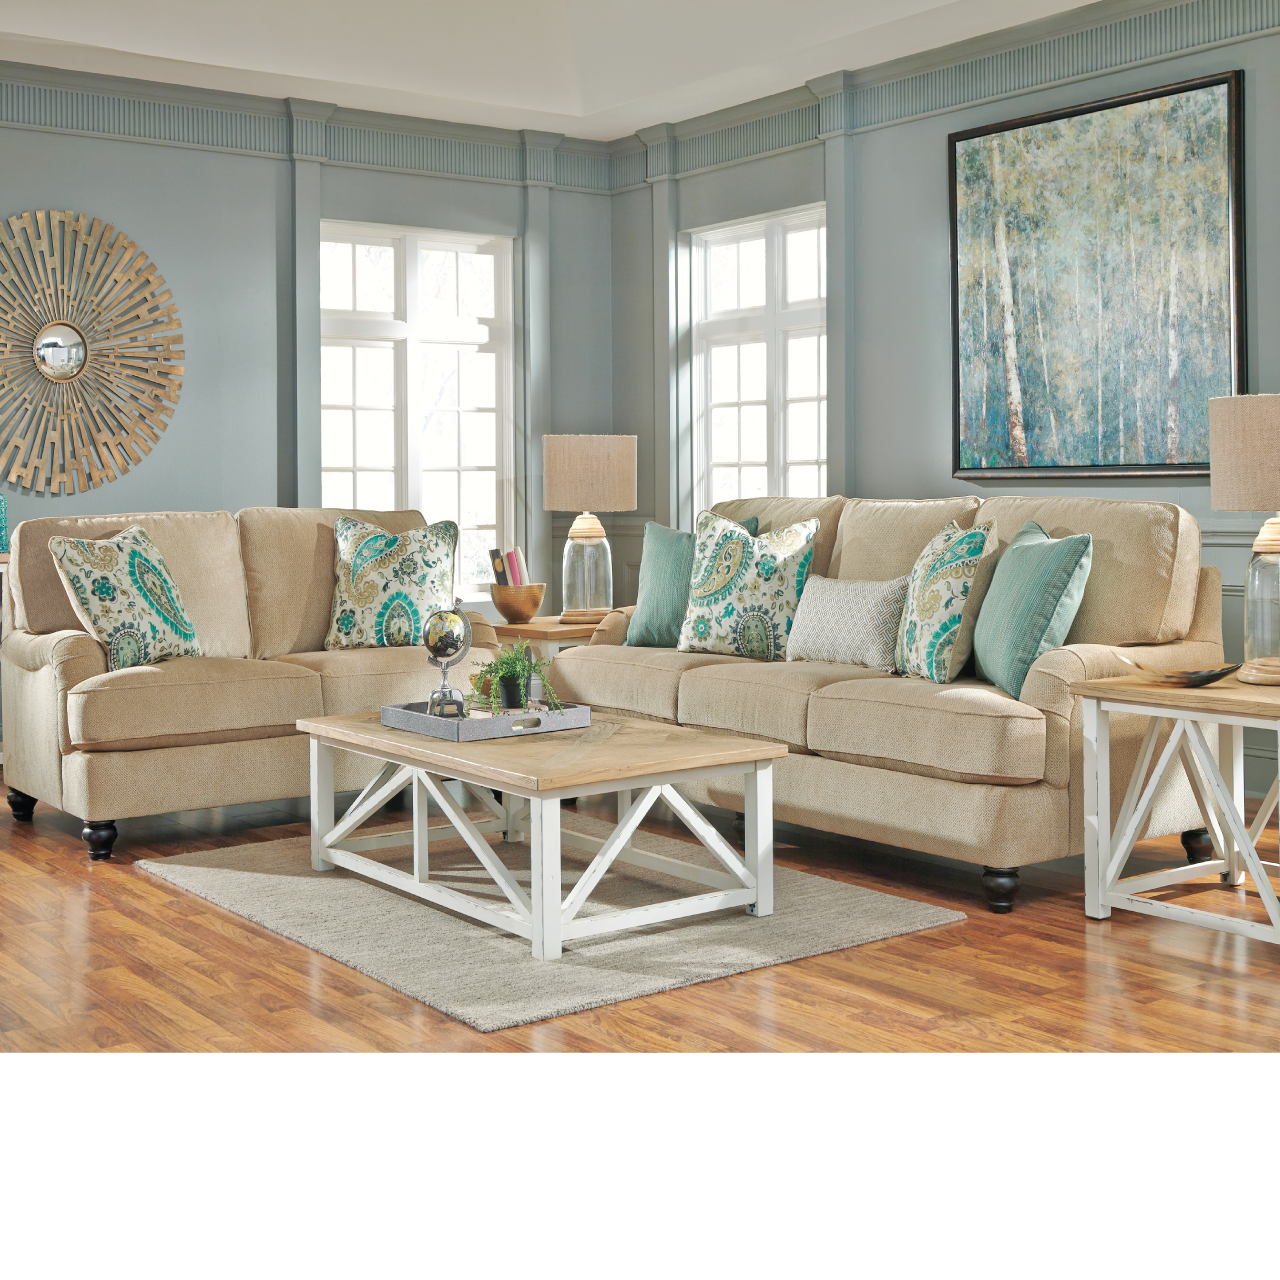 Living room ideas tan sofa - Room Coastal Living Room Ideas Lochian Sofa